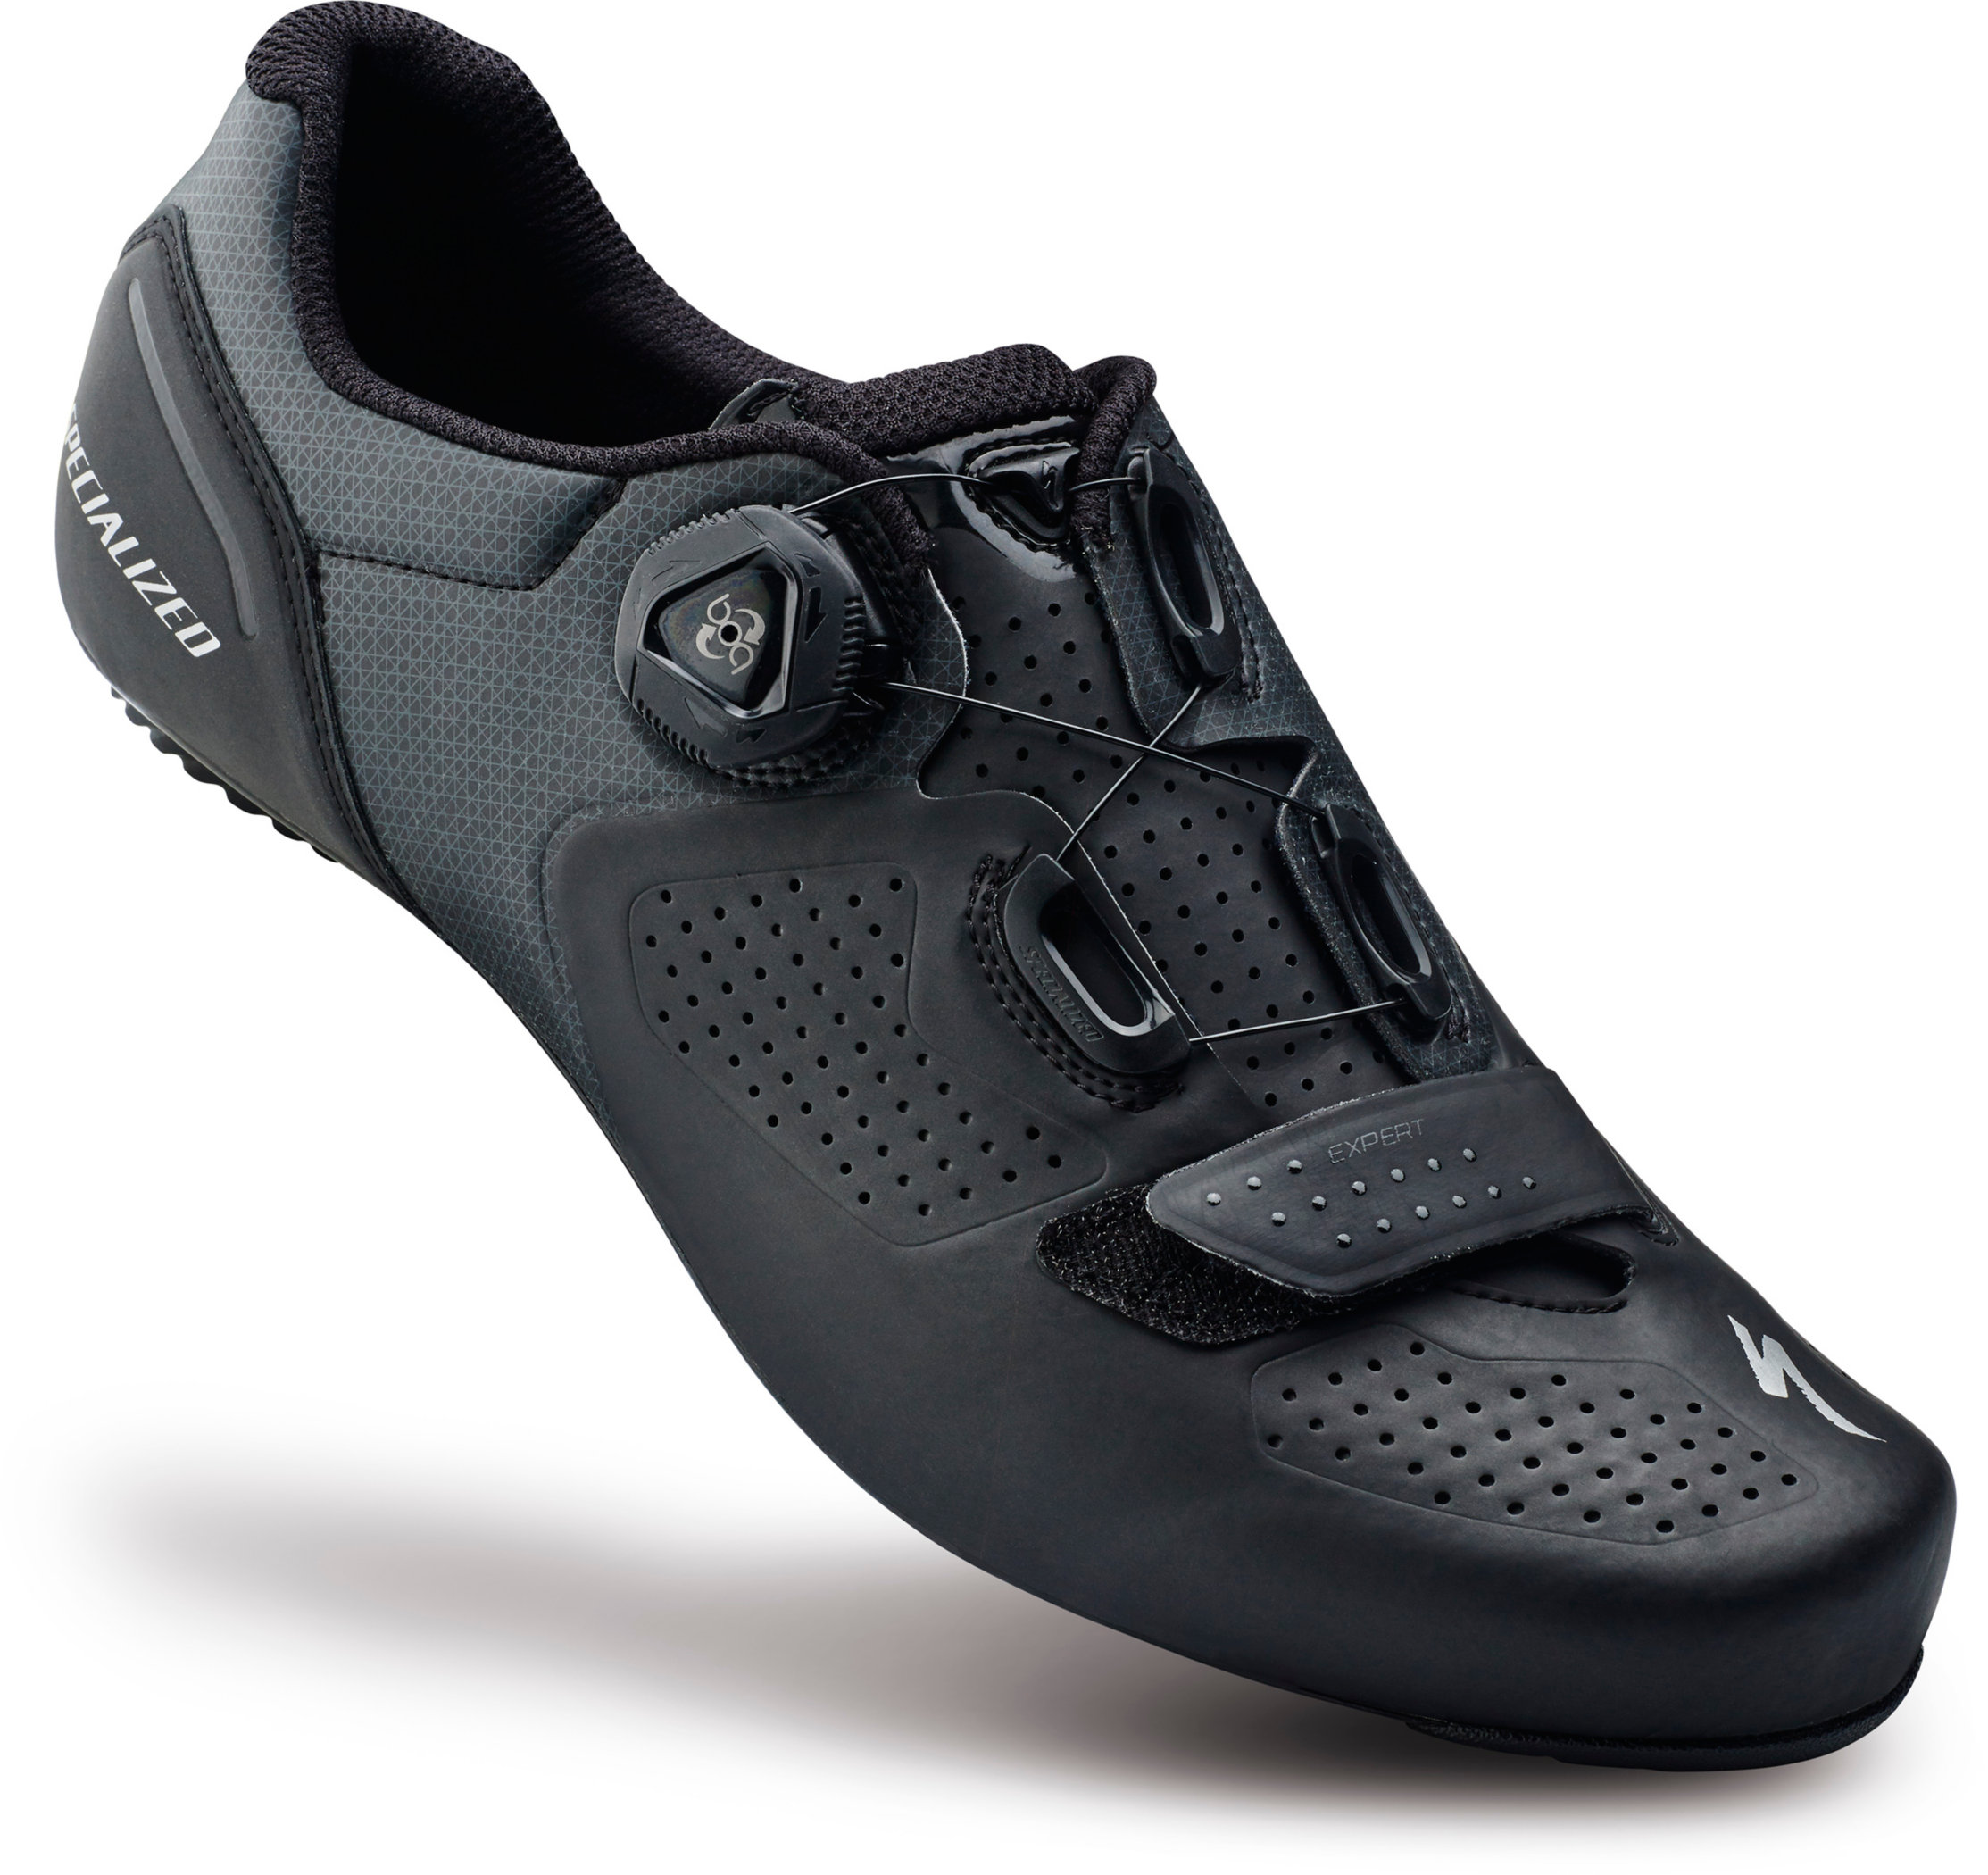 SPECIALIZED EXPERT RD SHOE BLK 38/5.75 - Alpha Bikes